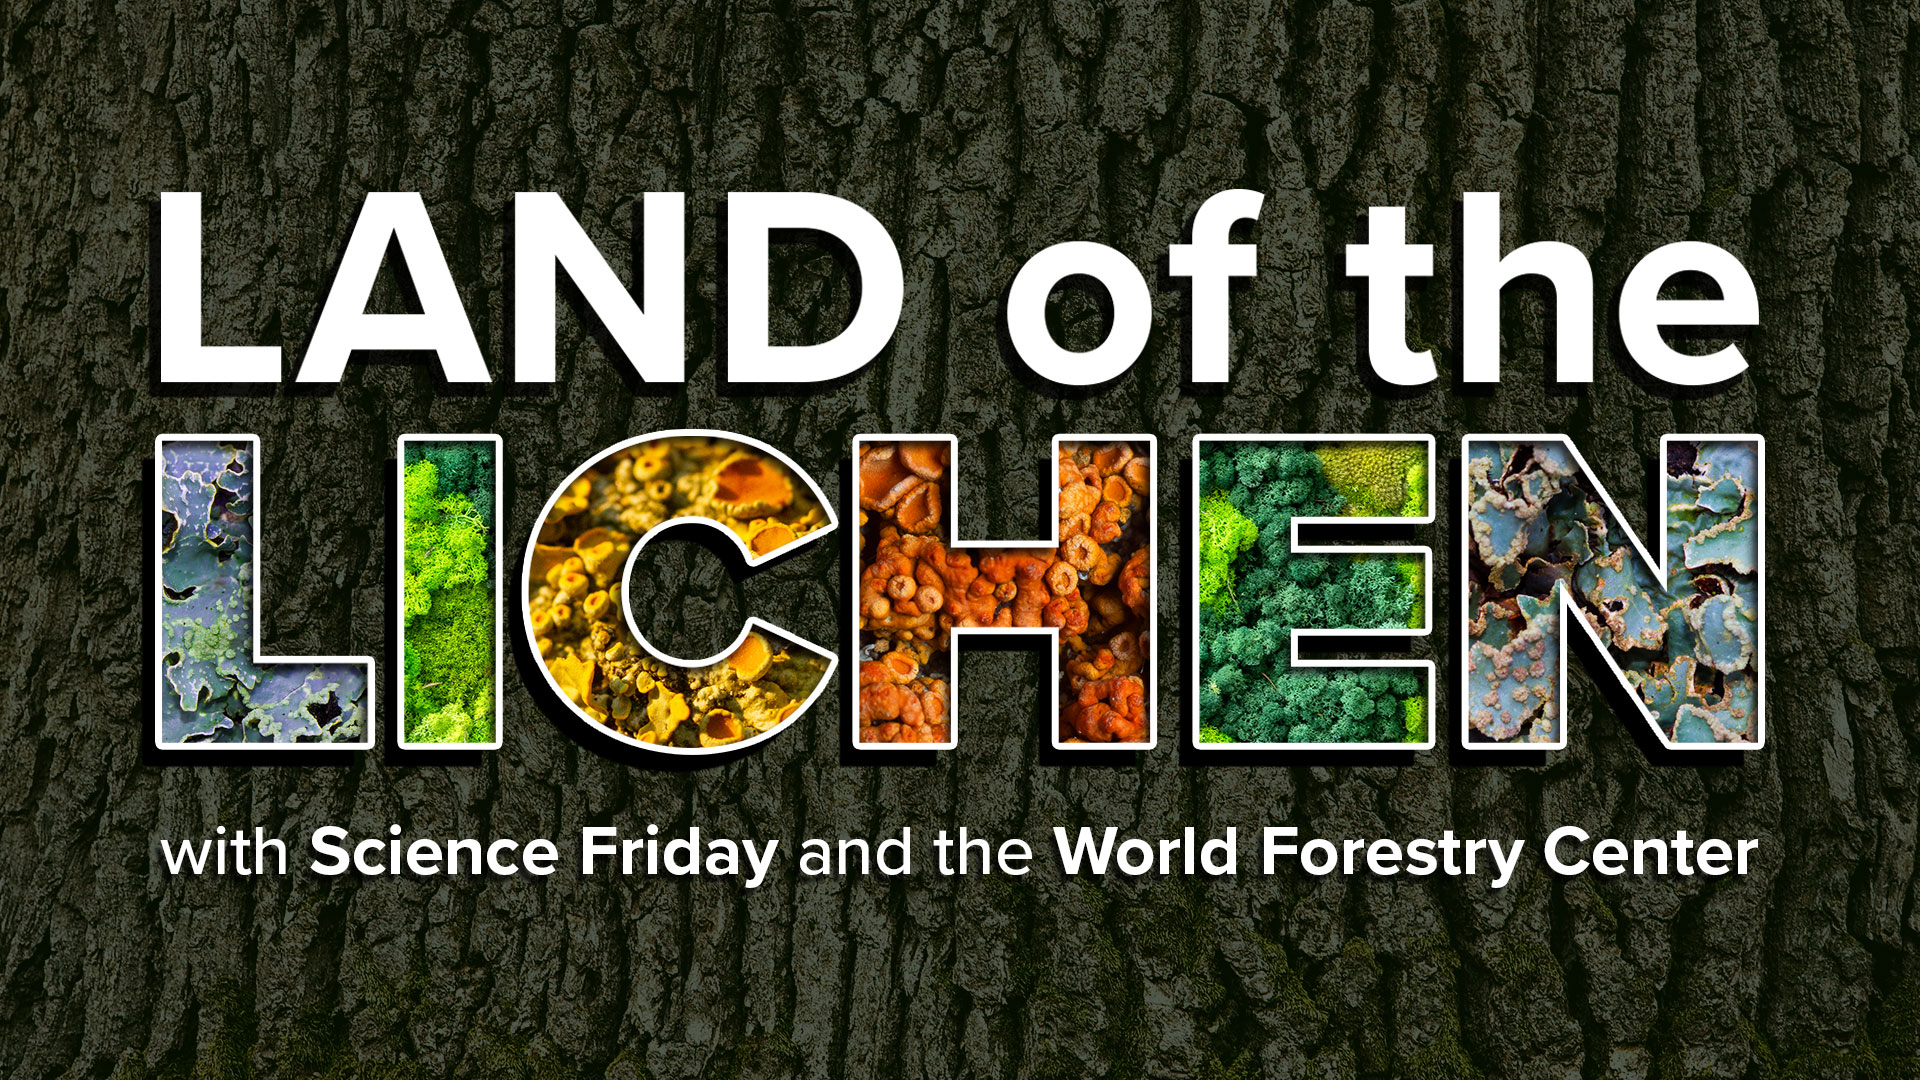 a textured tree bark background with the words 'land of the lichen, with science friday and the world forestry center', with different lichen textures featured inside the word 'lichen'